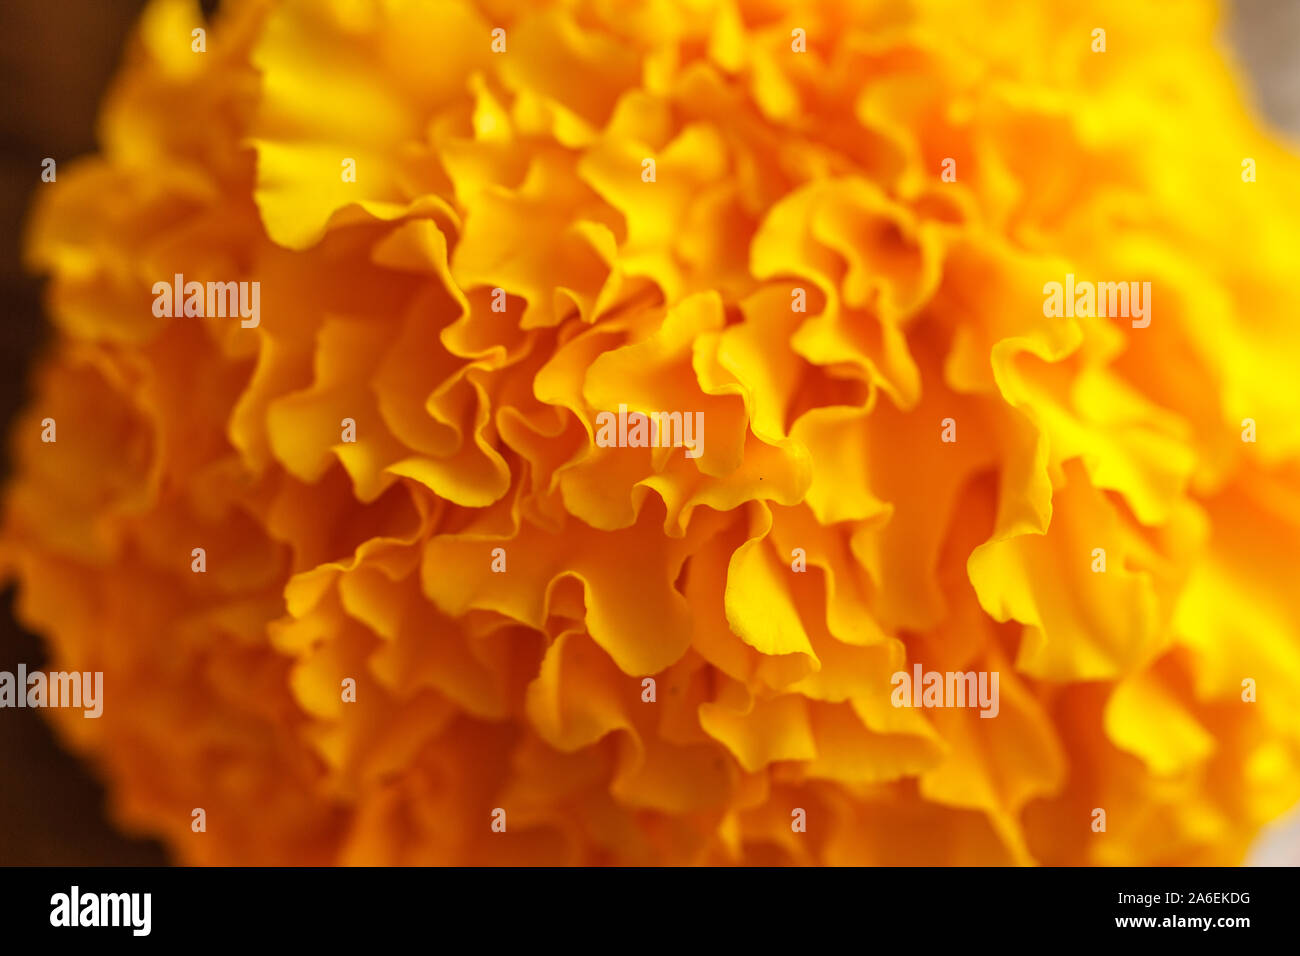 Floral wallpaper. Marigold flower close up, blurred. Bali Island, Indonesia Stock Photo